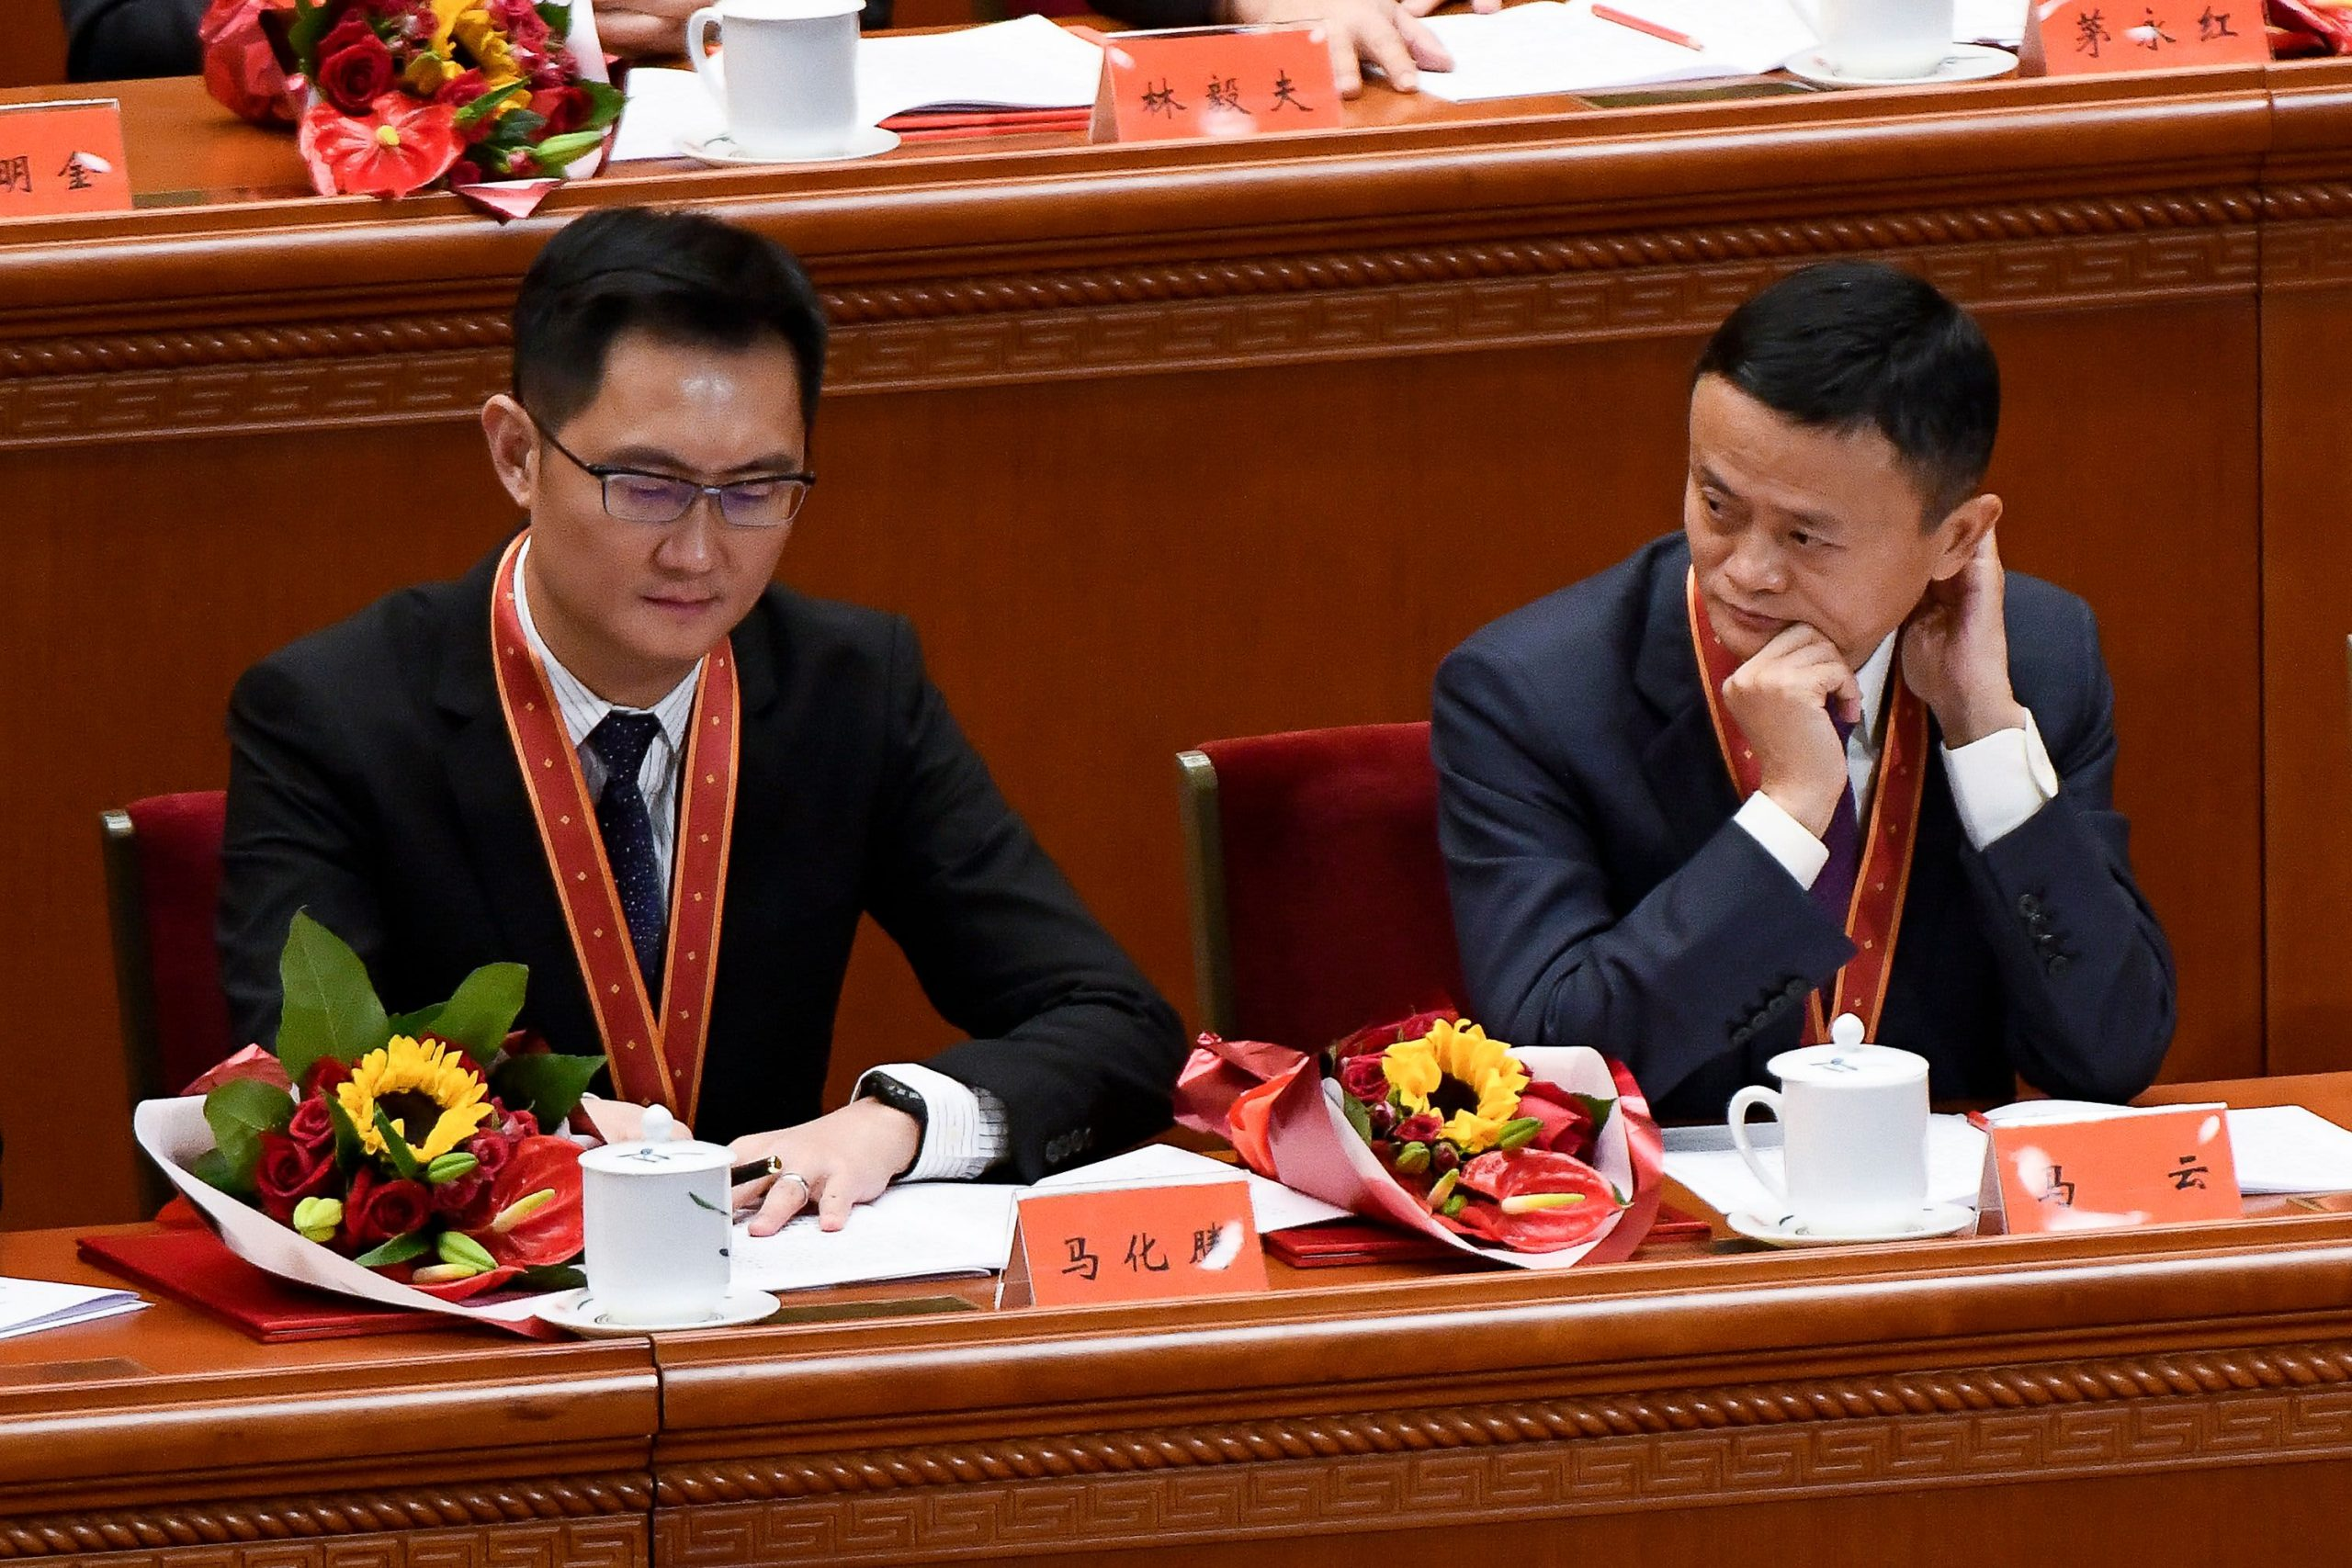 Tencent and Alibaba could collide